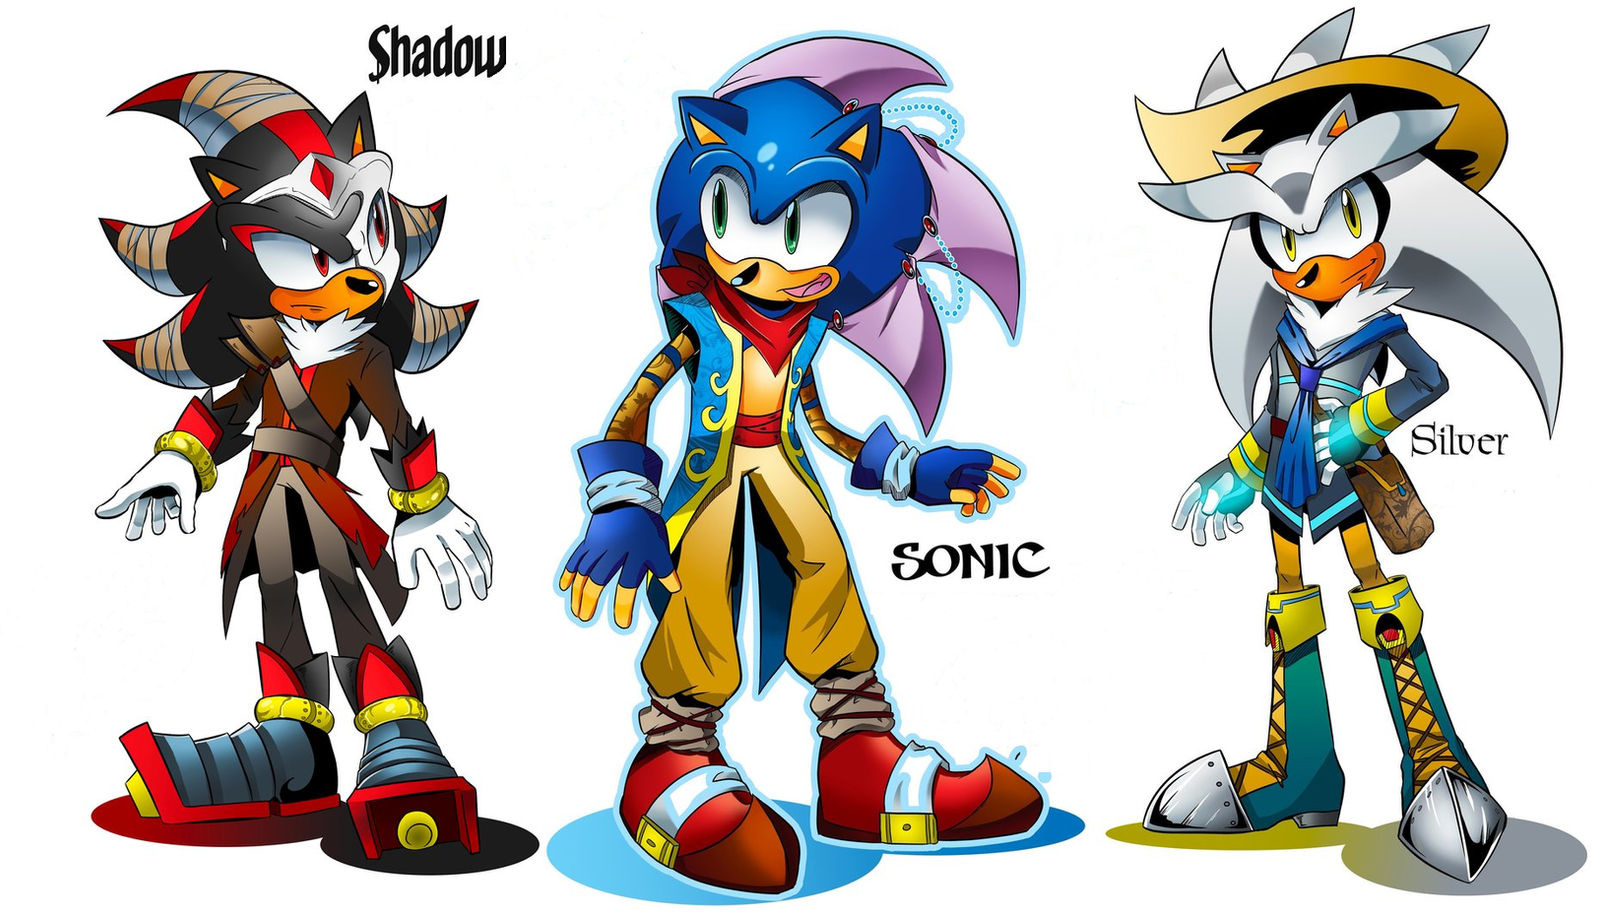 Speaking, sonic shadow and silver as girls